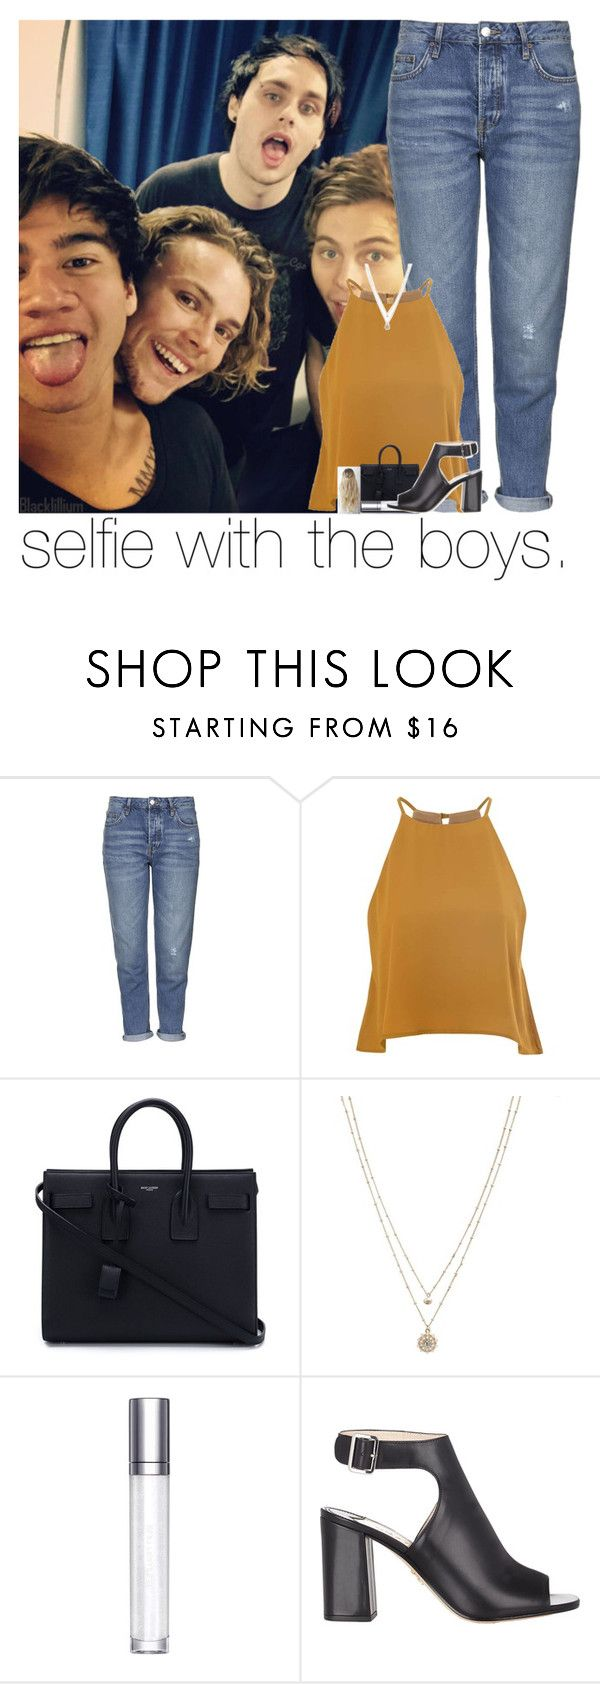 """selfie with the boys."" by sydneykhall ❤ liked on Polyvore featuring Topshop, Glamorous, Yves Saint Laurent, LC Lauren Conrad, shu uemura and Prada"